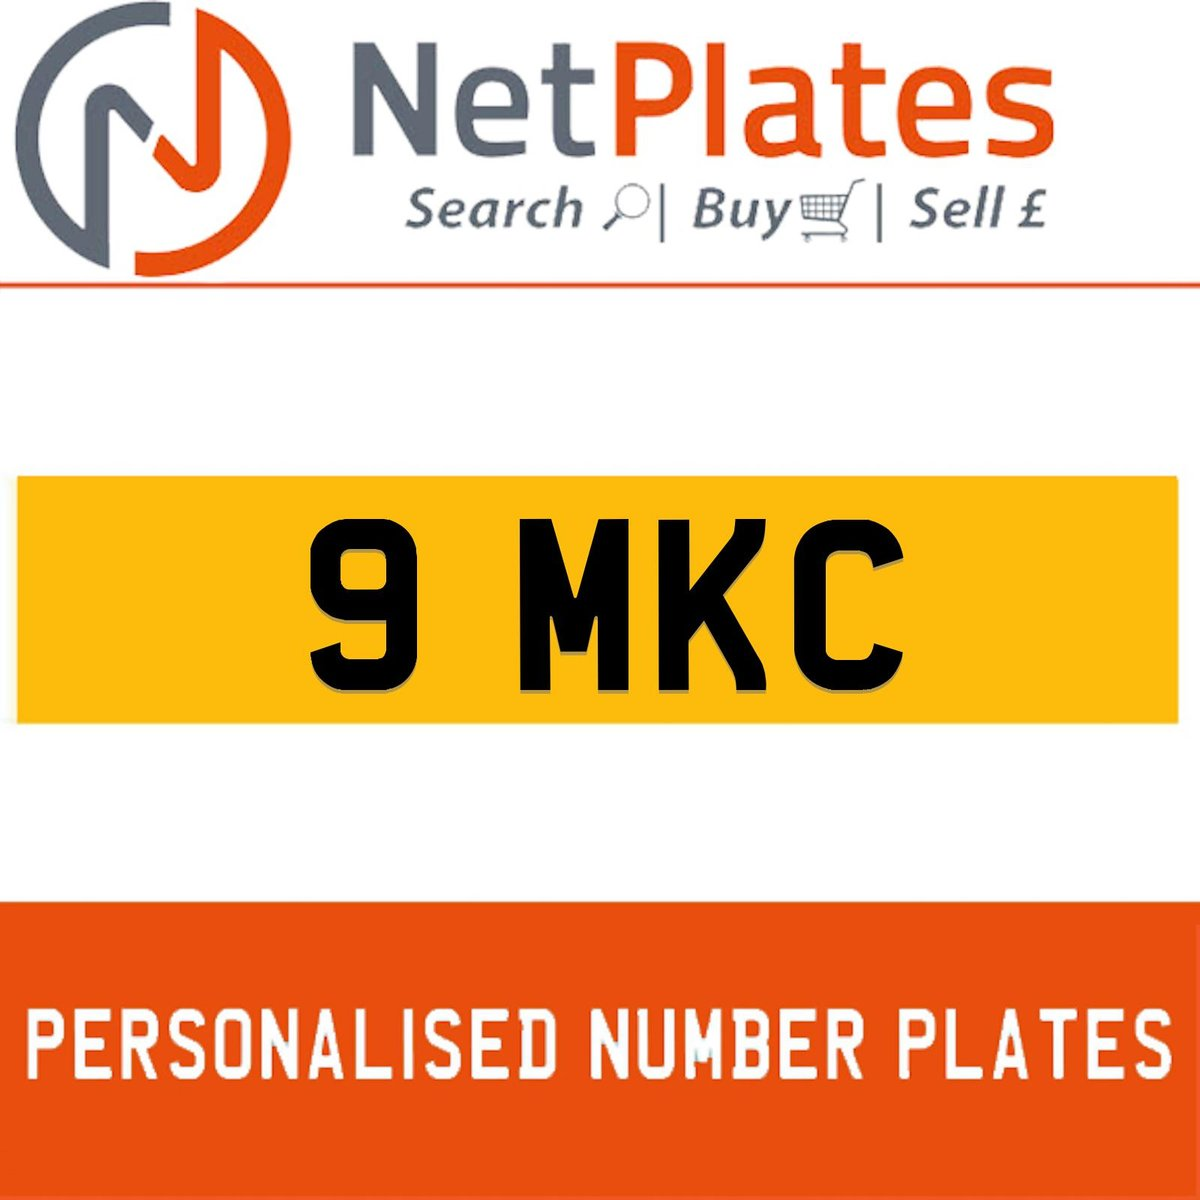 1900 9 MKC PERSONALISED PRIVATE CHERISHED DVLA NUMBER PLATE For Sale (picture 1 of 5)